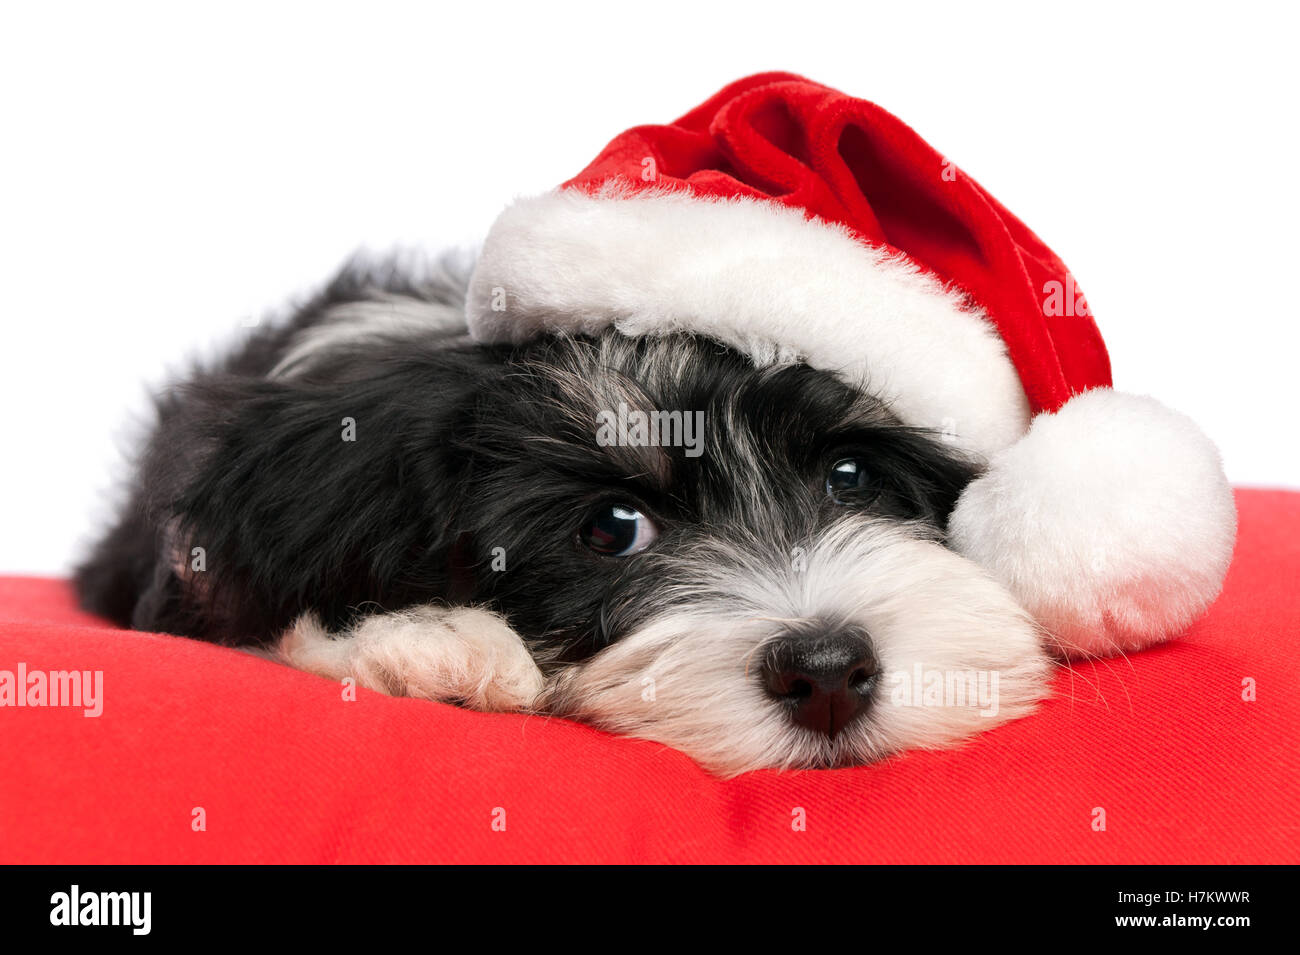 Cute Bichon Havanese puppy dog in Santa hat is lying on a red cushion - Stock Image